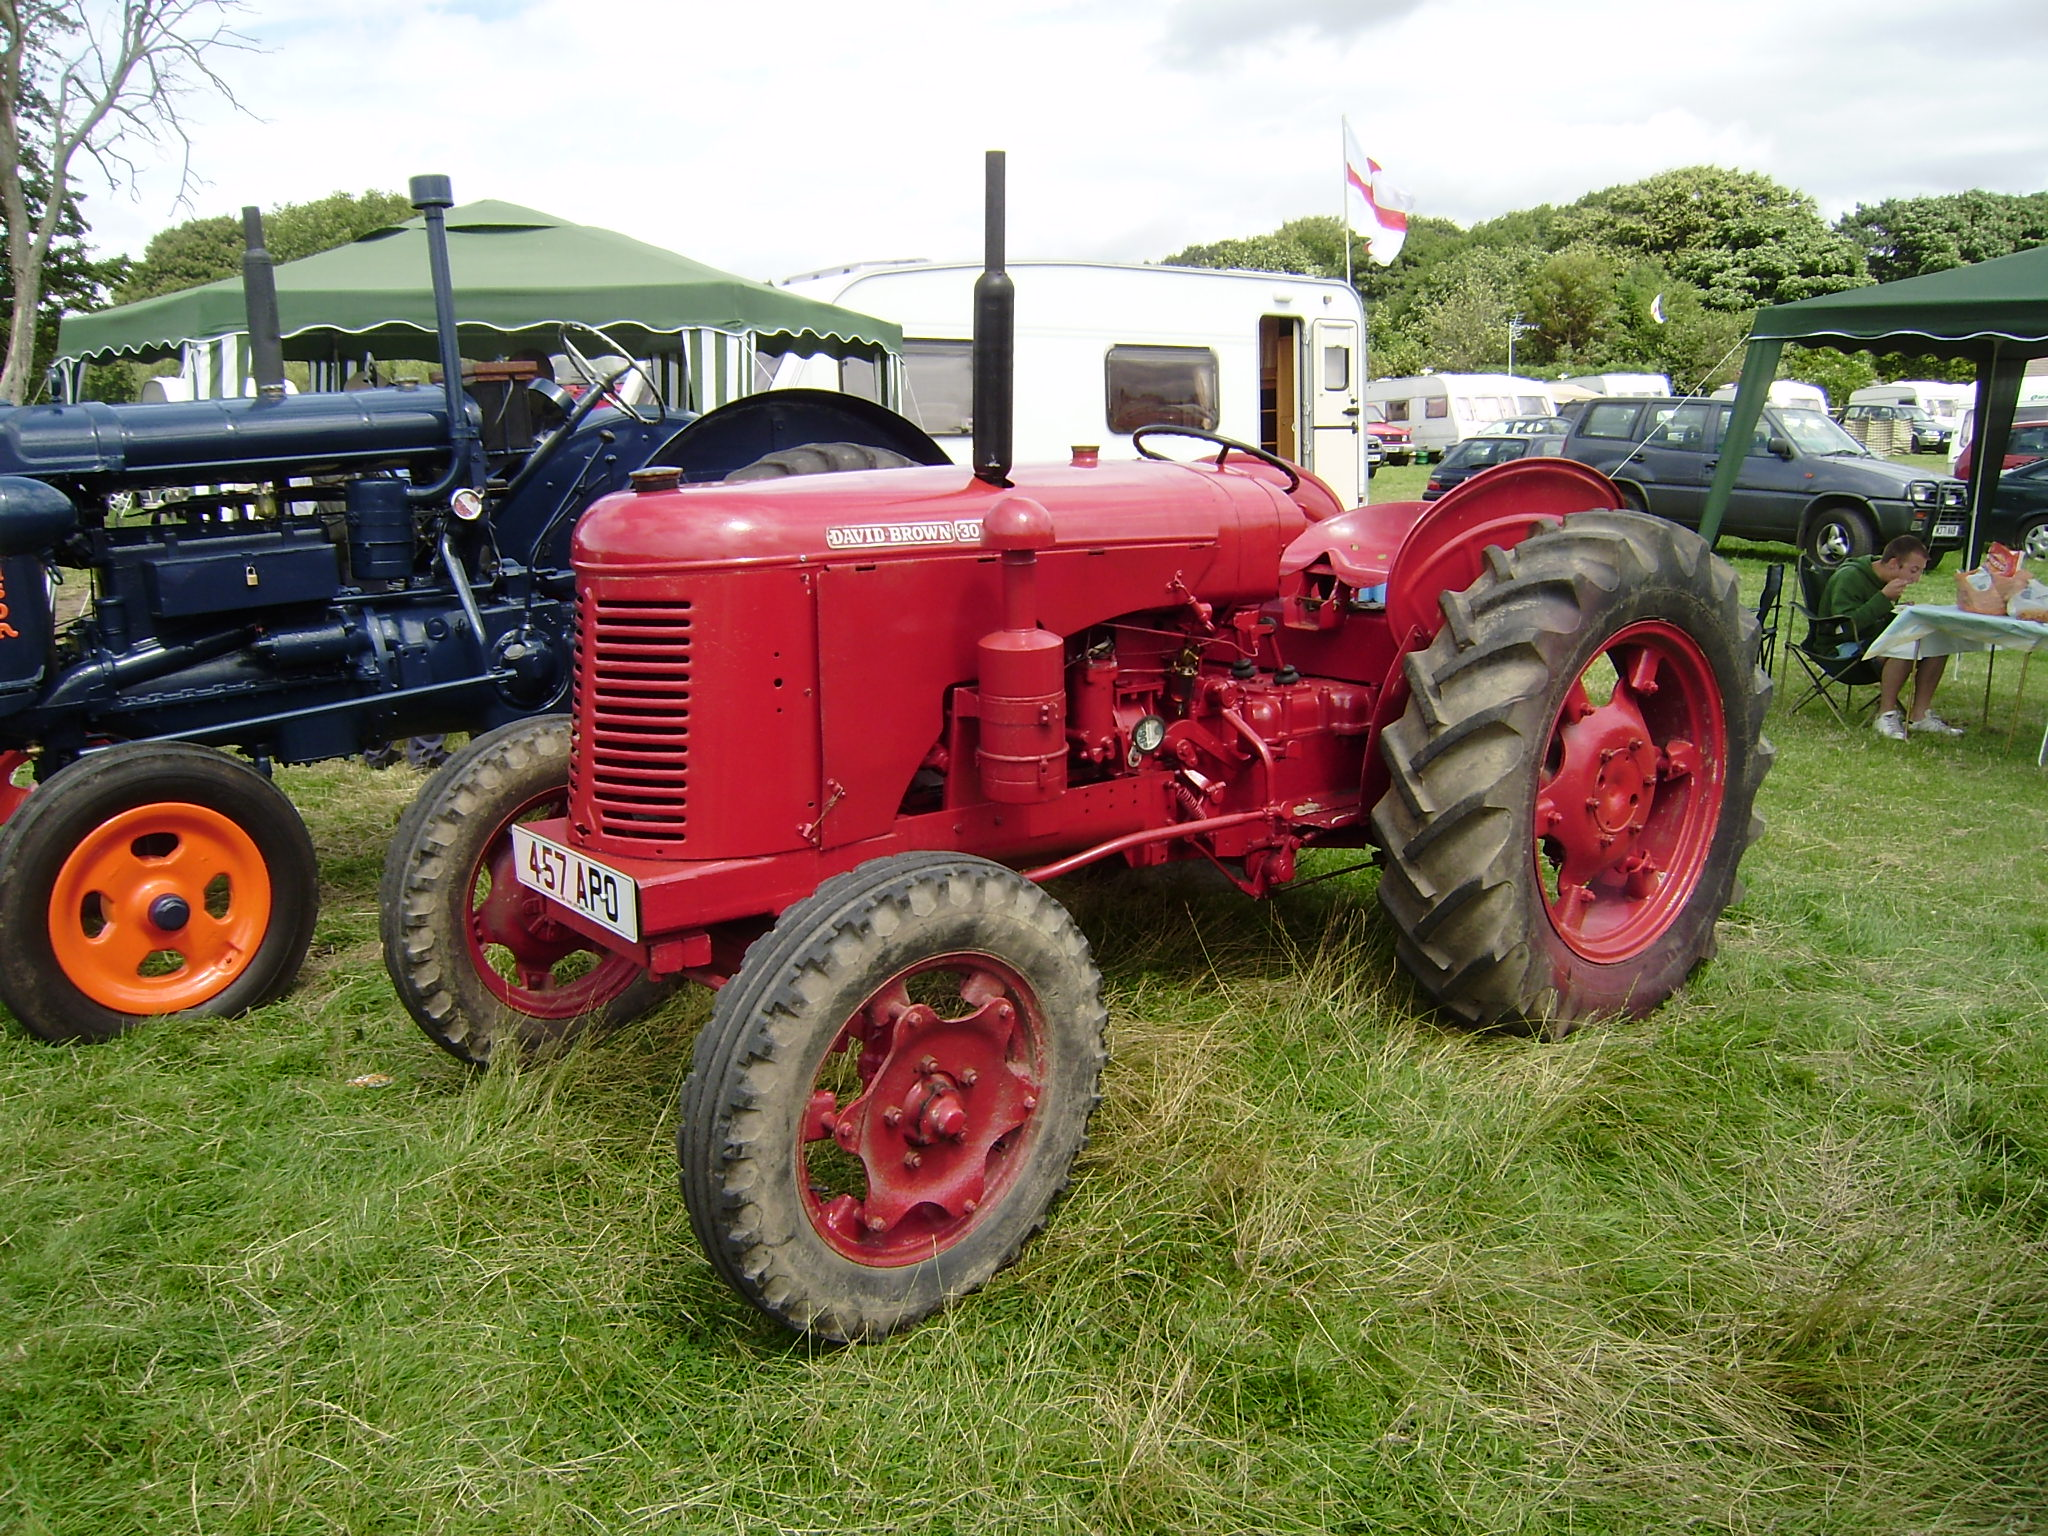 David Brown - Tractor & Construction Plant Wiki - The ...